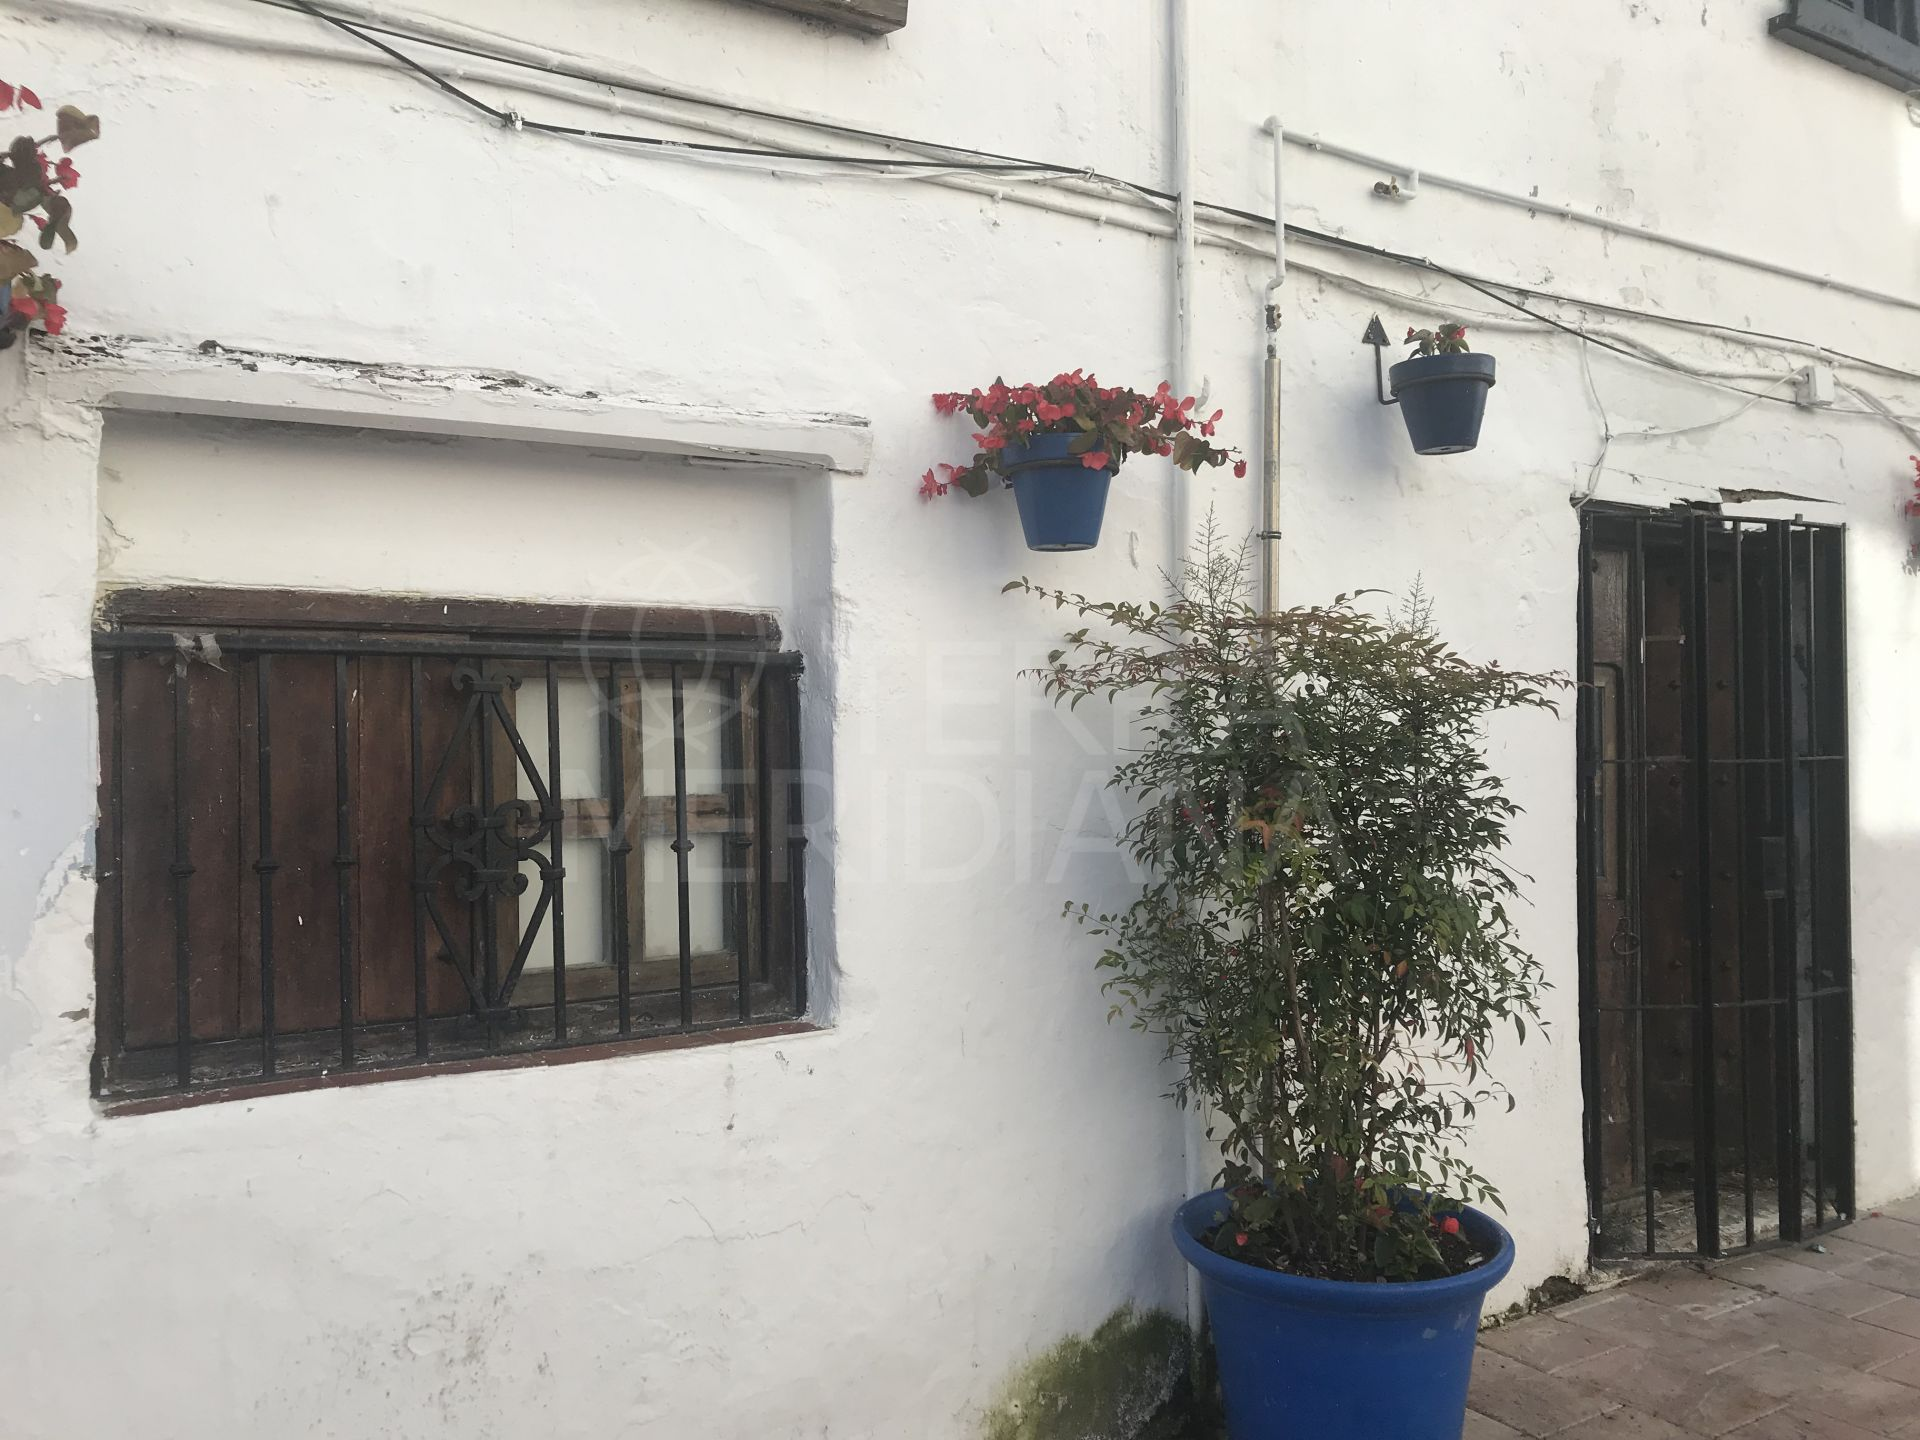 Commercial premises for sale in Estepona centre close to the beach